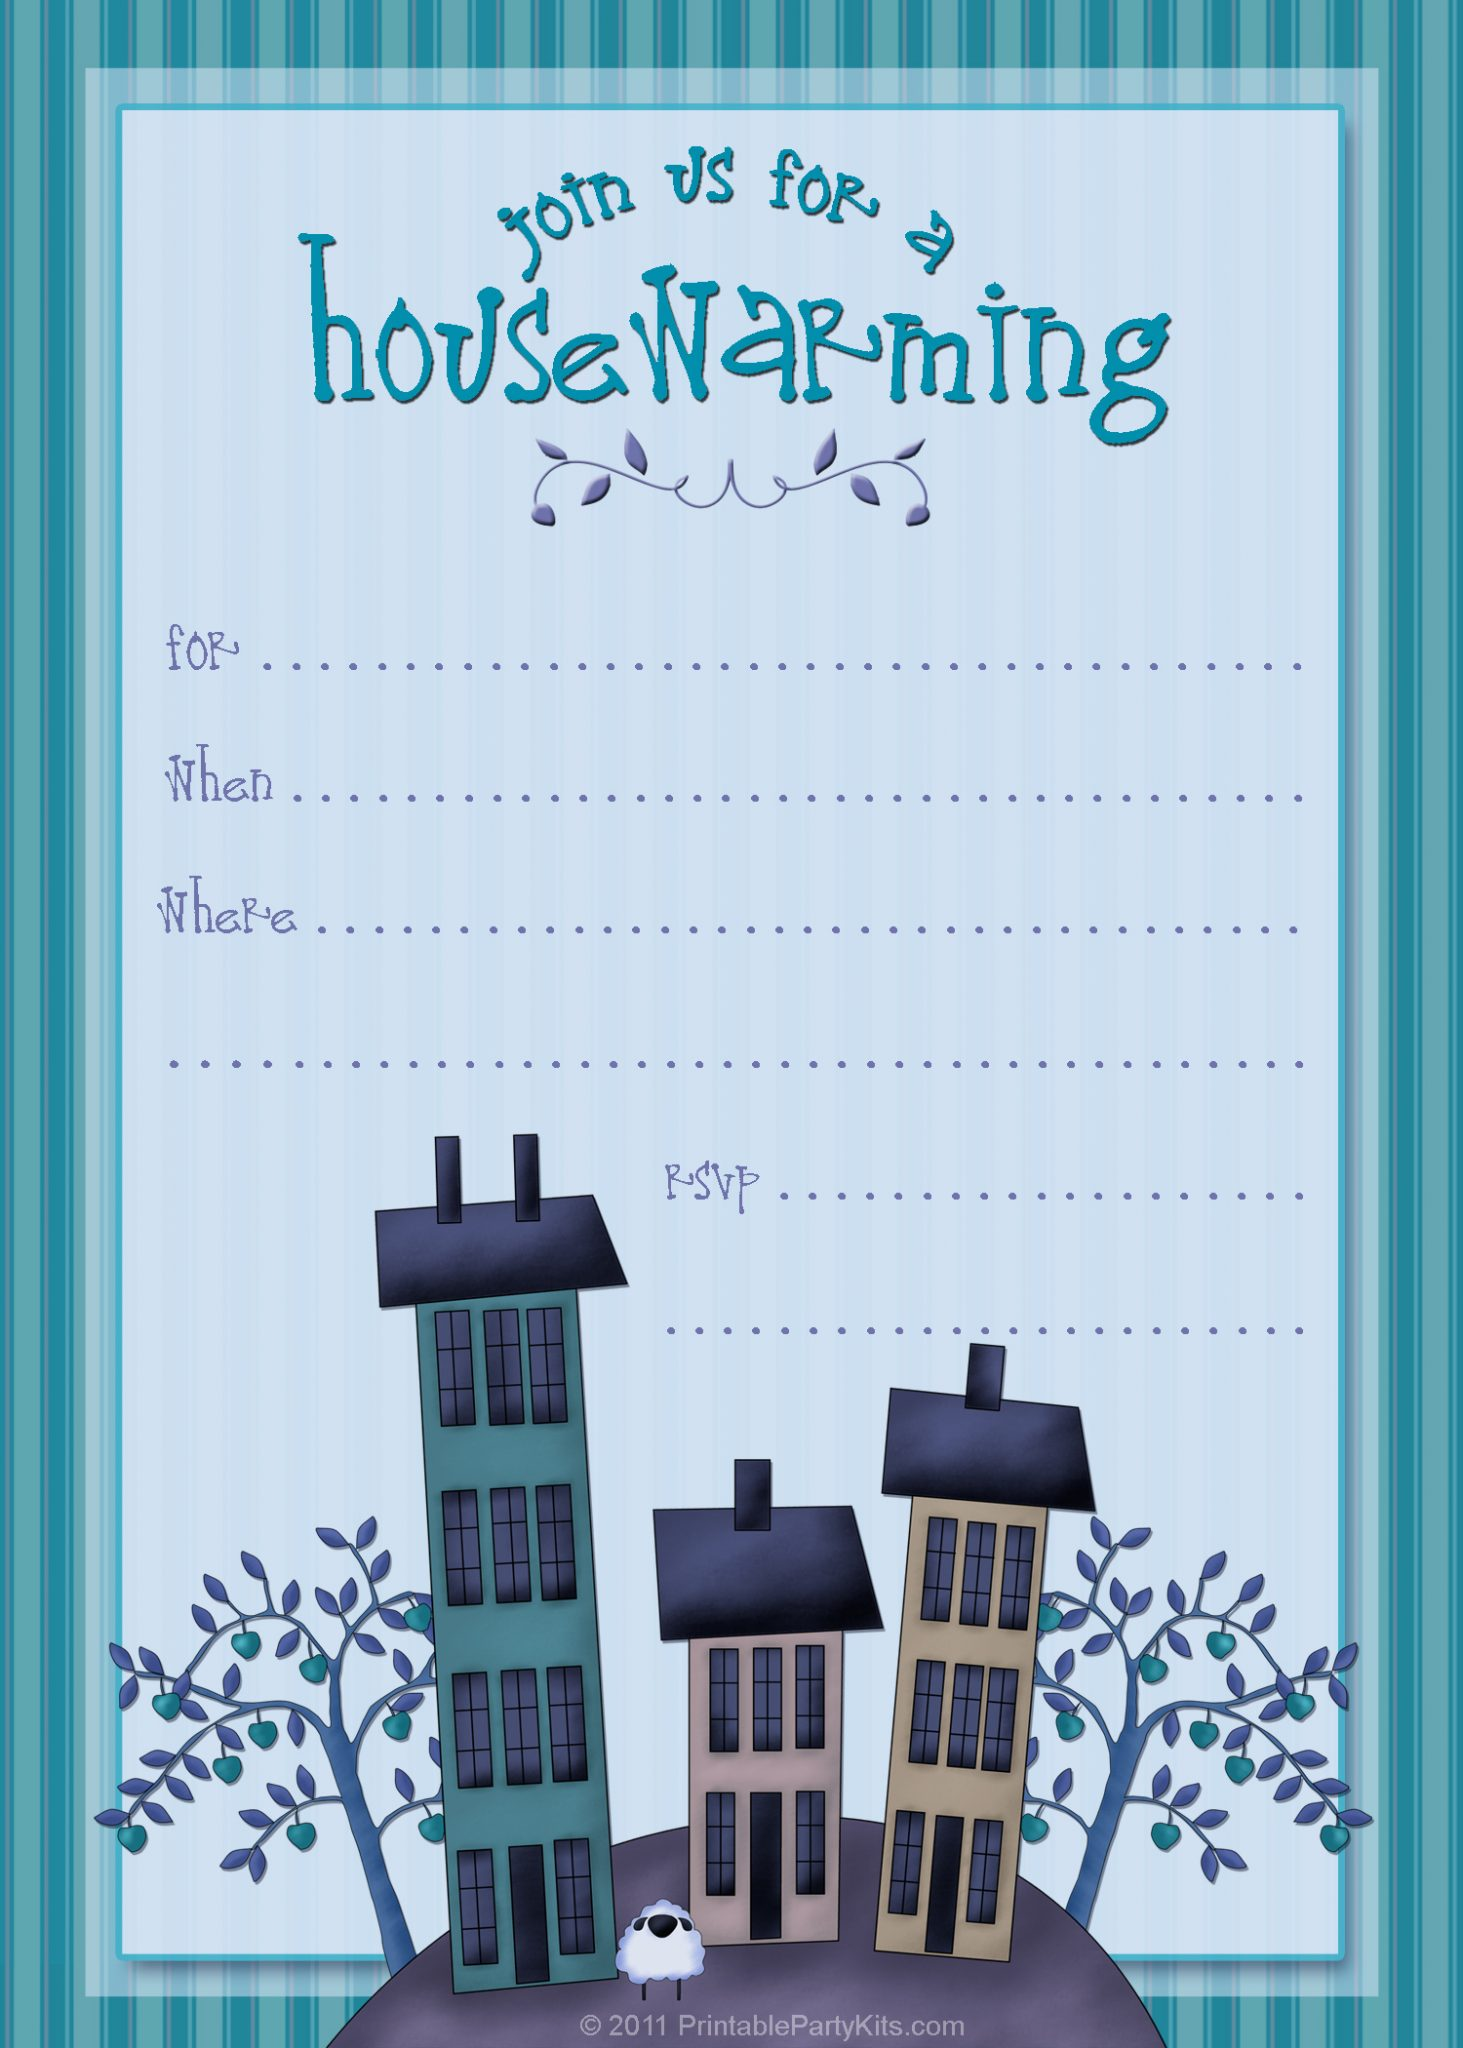 Housewarming Party Invite is one of our best ideas you might choose for invitation design